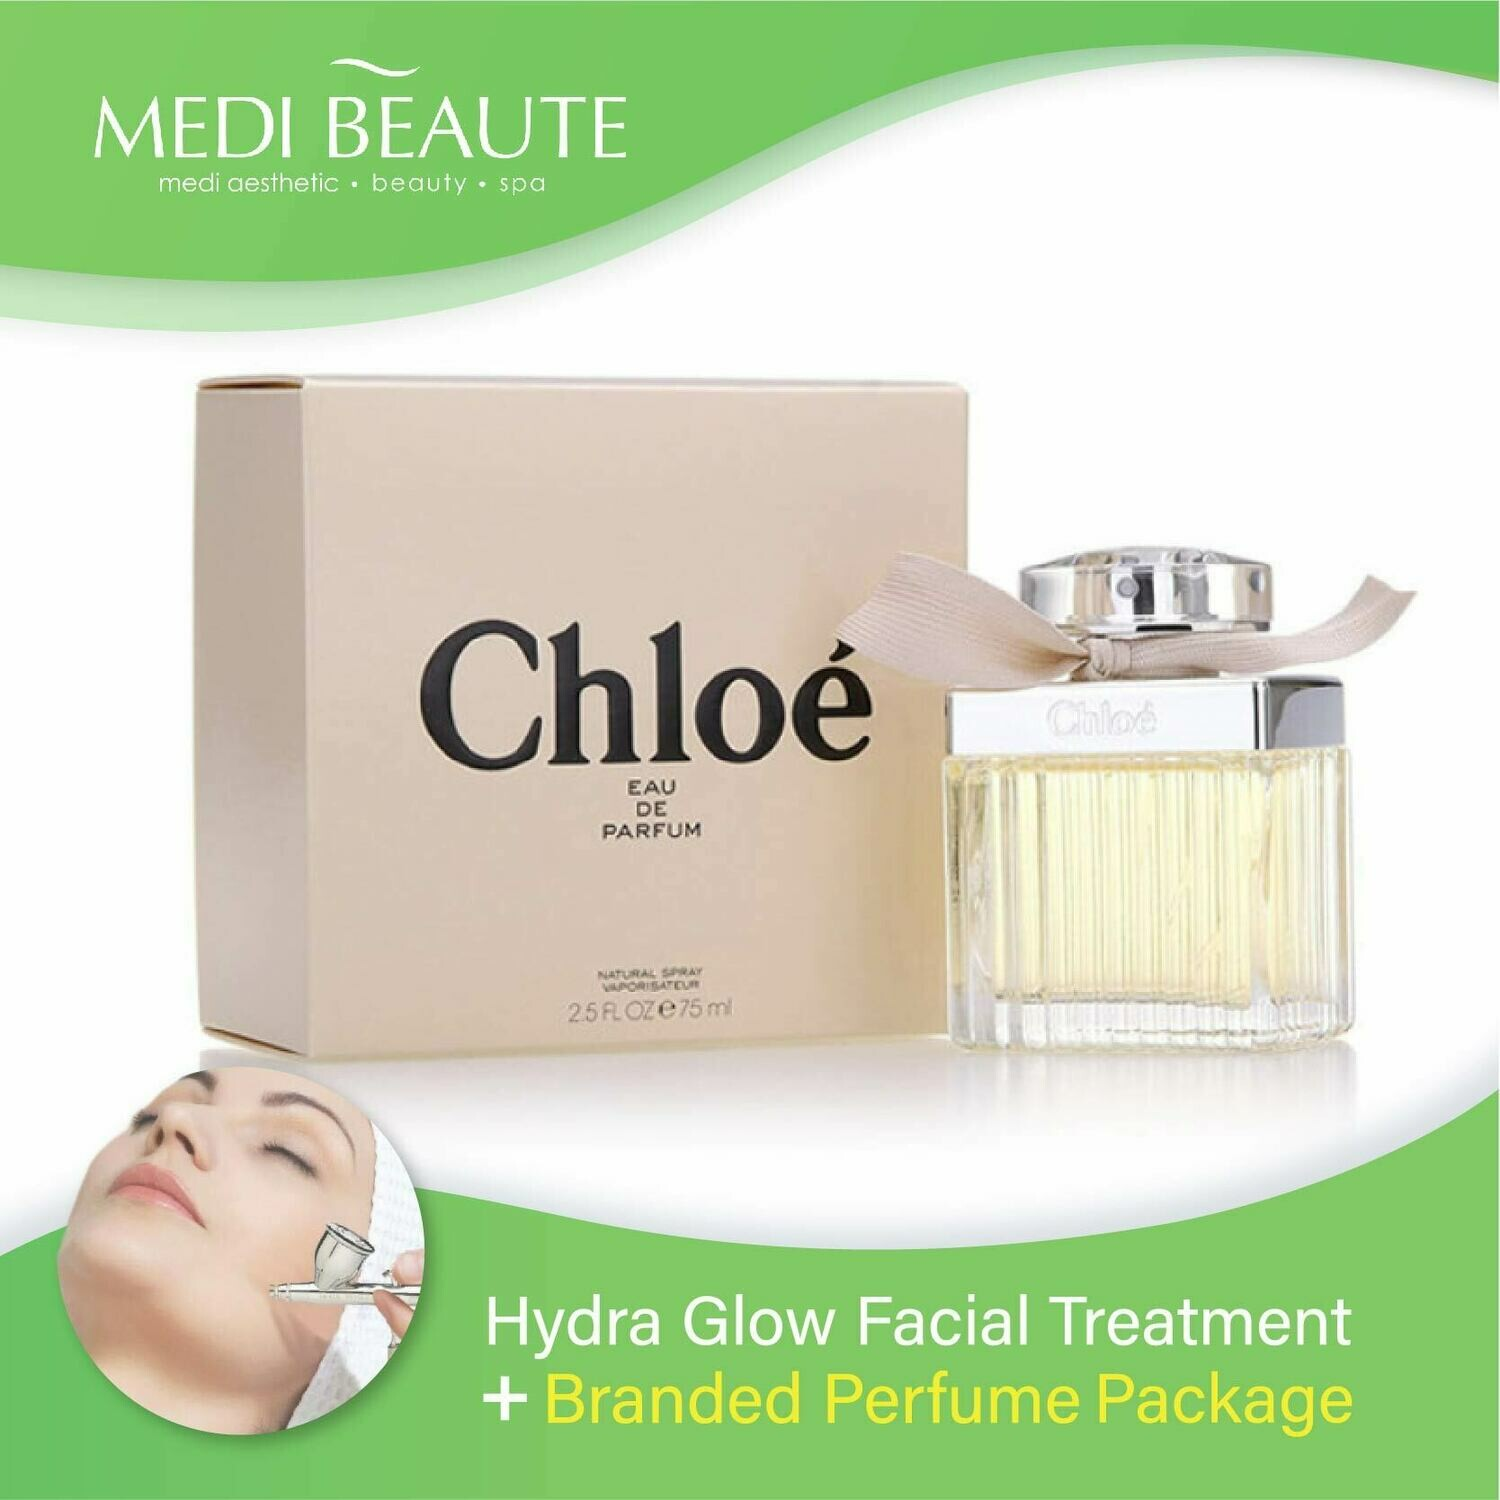 Medi Beaute Hydra Glow Facial + Branded Perfume ( Chloe Classic Chloe Lady EDP 75ml) Package